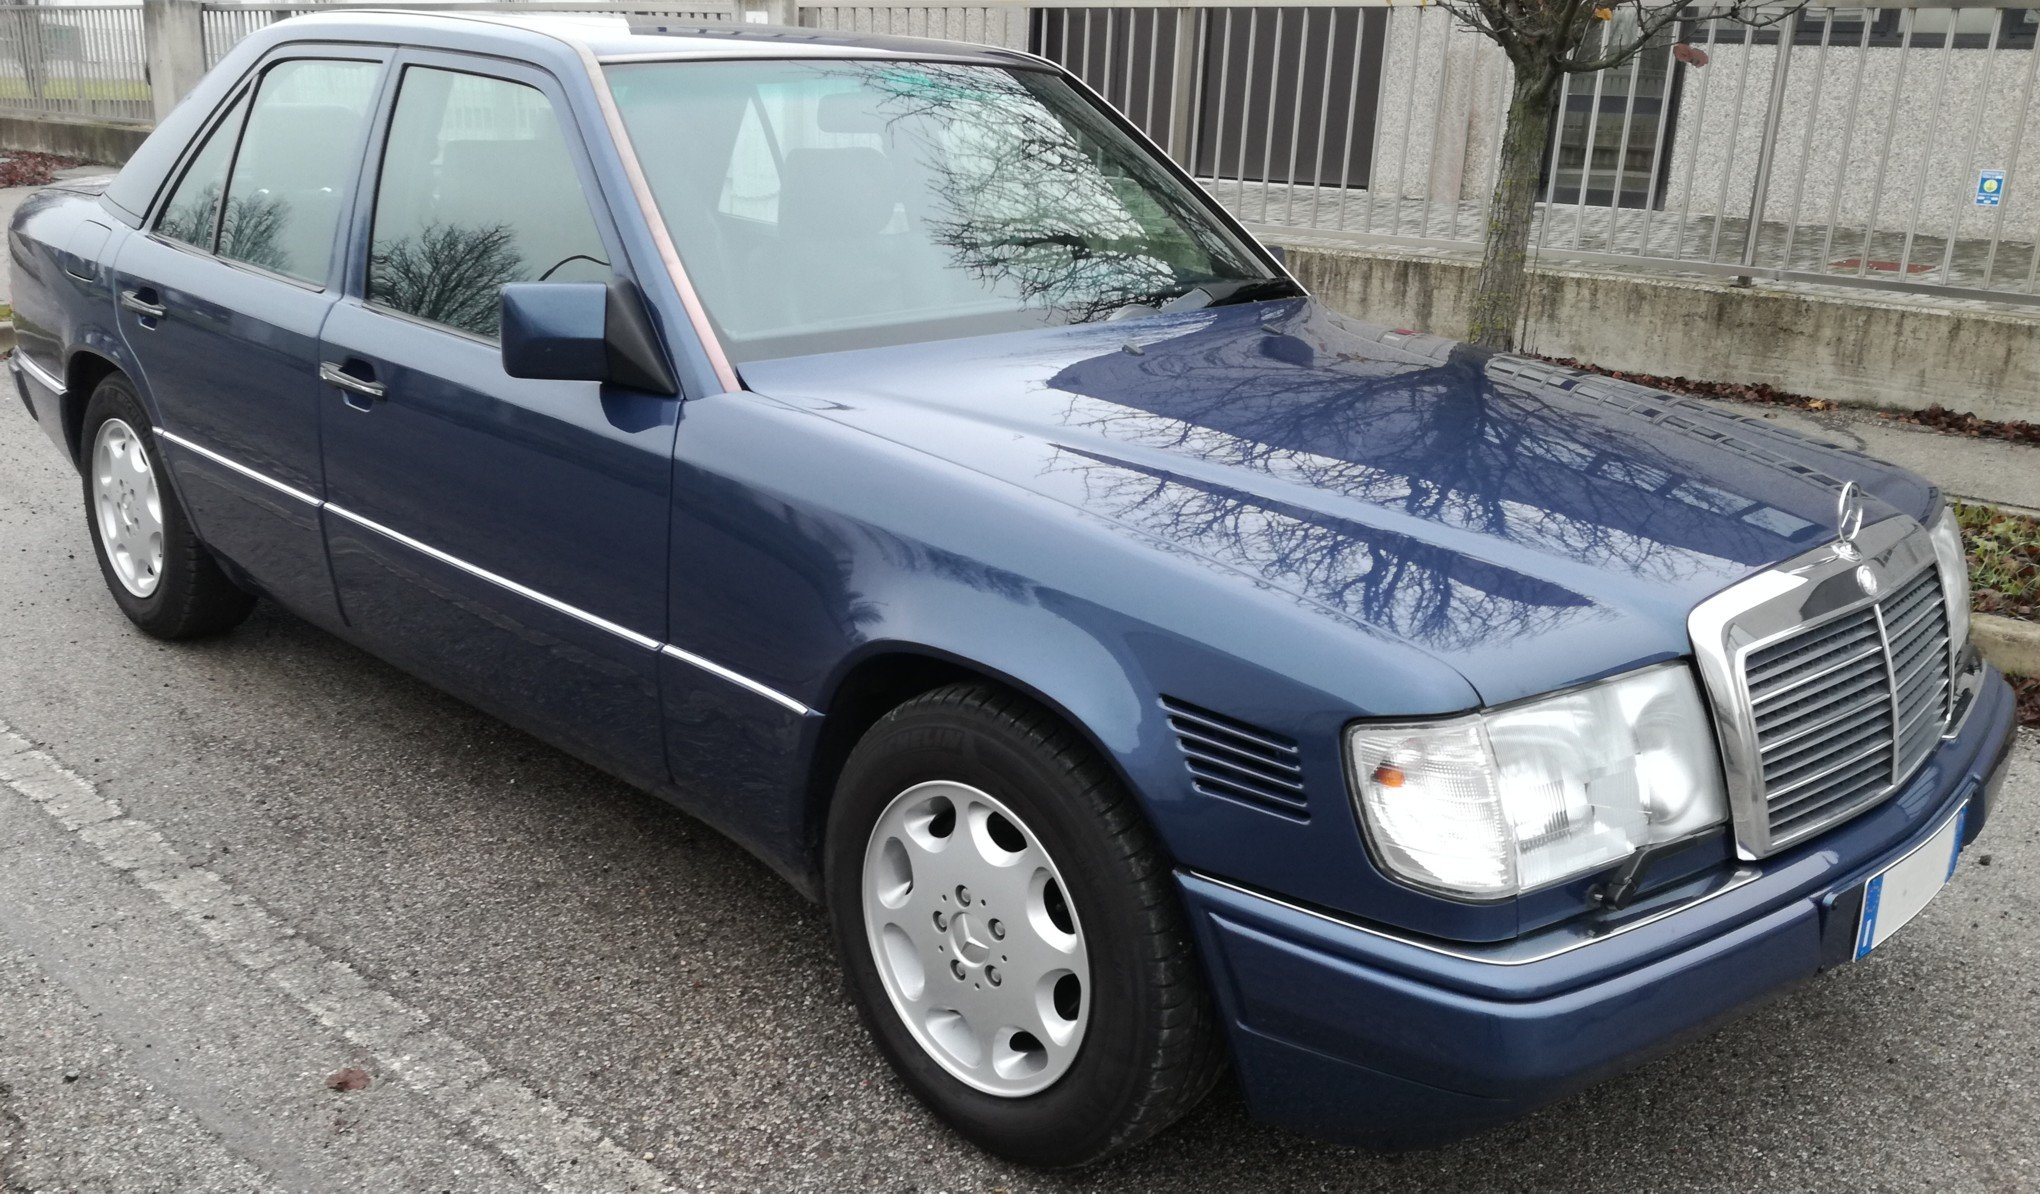 1992 MERCEDES BENZ W124 300D TD For Sale (picture 1 of 6)